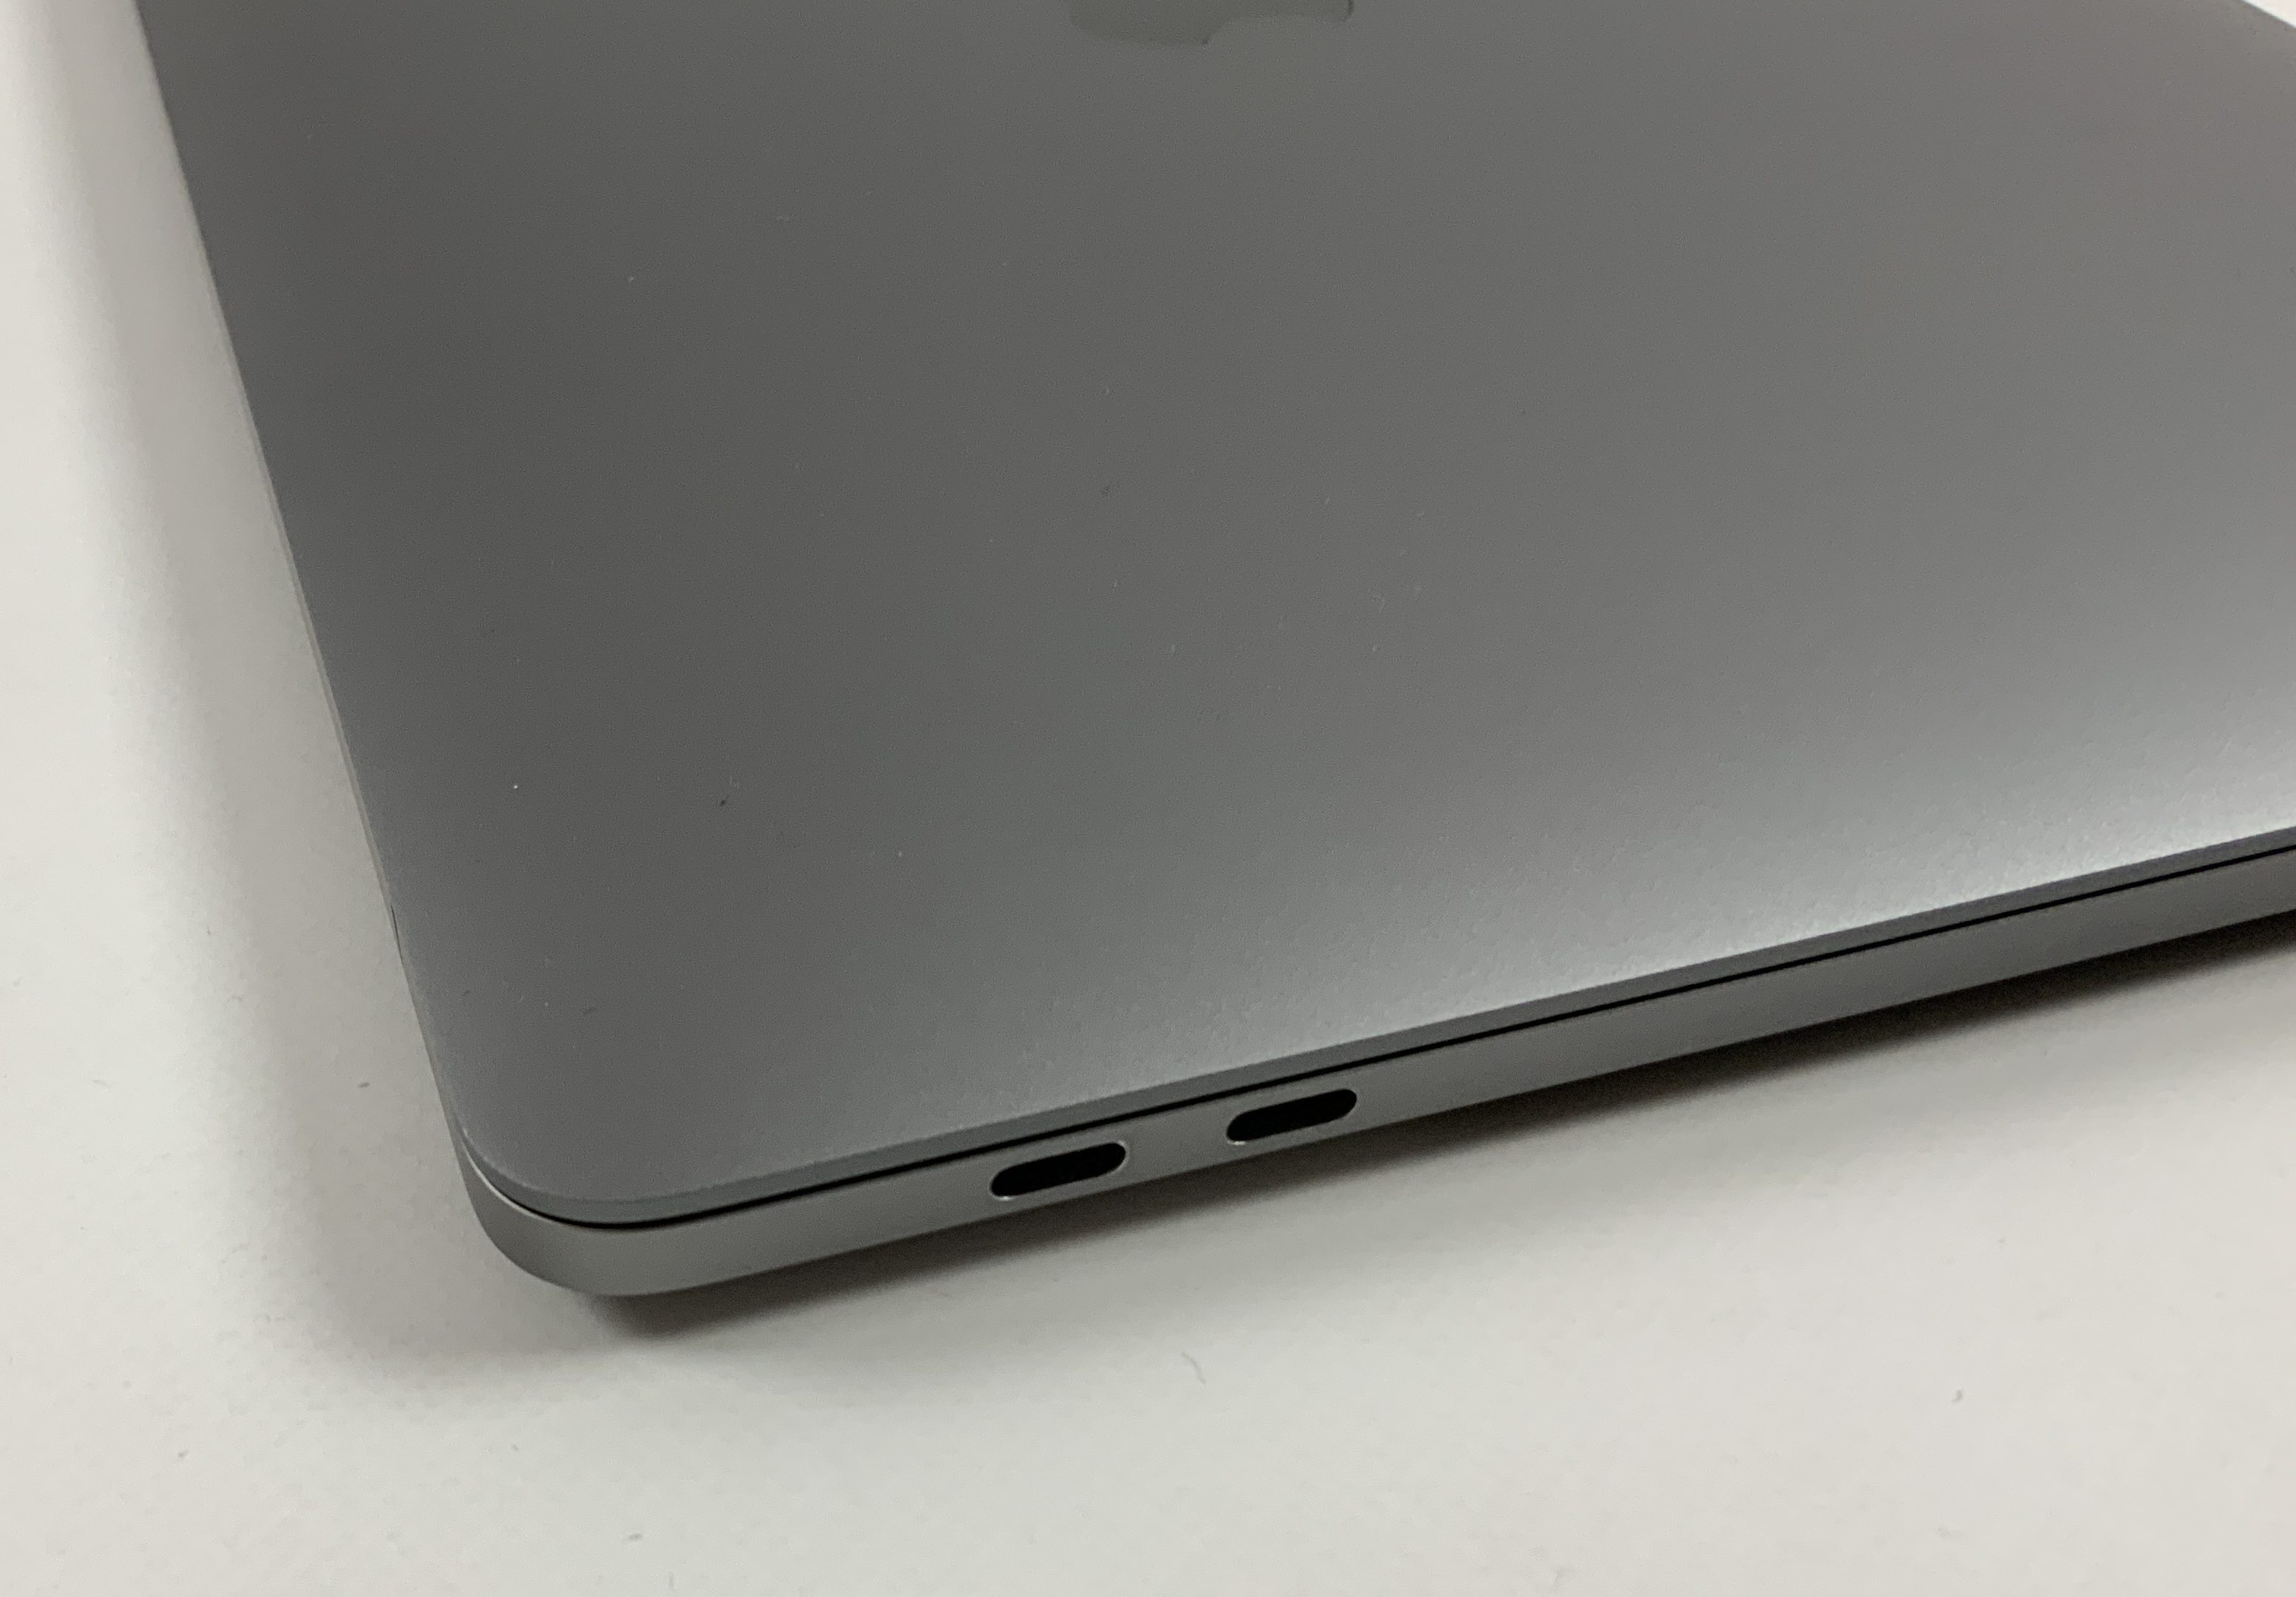 "MacBook Pro 13"" 4TBT Late 2016 (Intel Core i5 2.9 GHz 8 GB RAM 256 GB SSD), Space Gray, Intel Core i5 2.9 GHz, 8 GB RAM, 256 GB SSD, immagine 3"